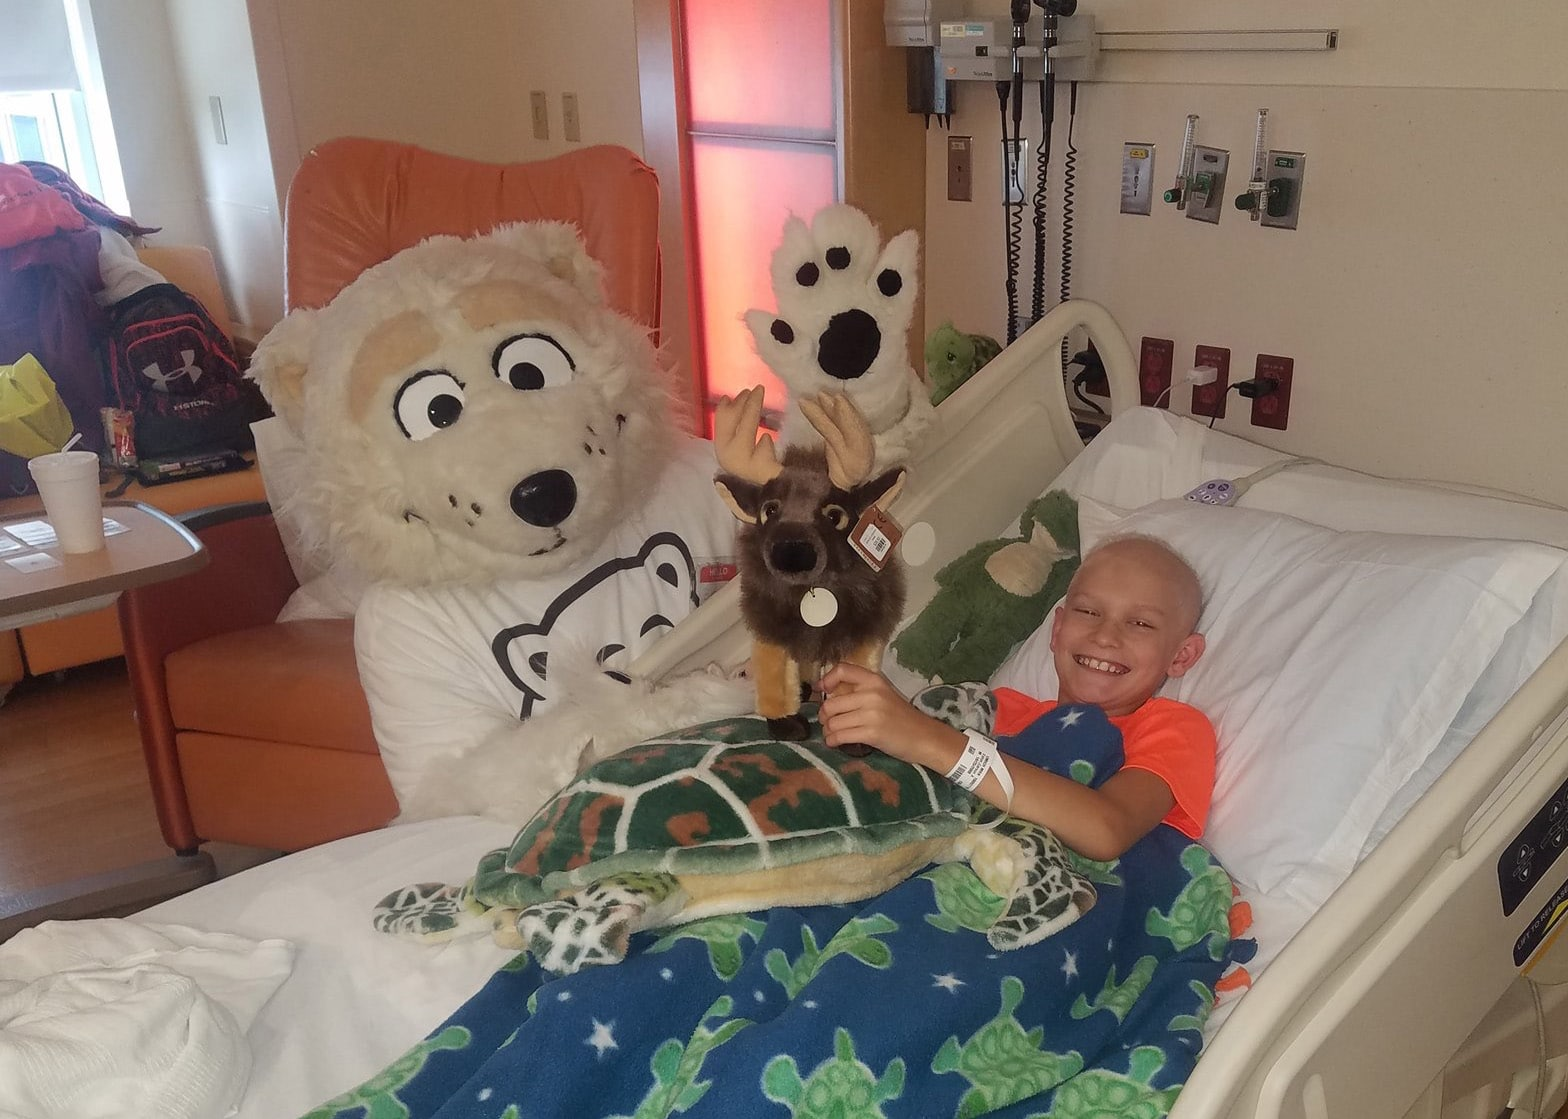 Beary the adorable Polar Bear Mascot visits Beaumont children's hospital